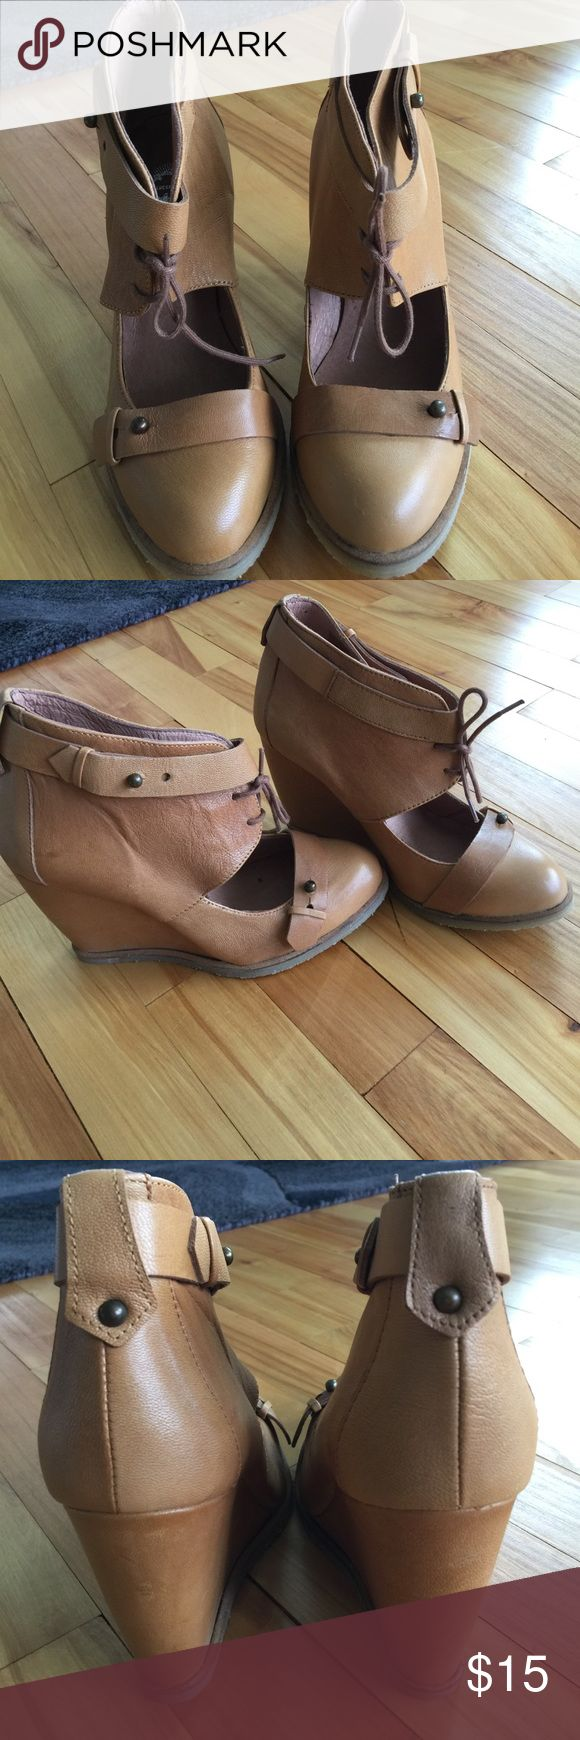 Lucky Penny tan leather ankle boot wedges, sz 7/37 Lucky Penny tan leather wedge ankle boots. Lots of style details belted band across ties match band that wraps around ankle. Cut out toe box with lace up ankle wrap. 4 inch wedges with narrow heel. Gum soles. Made in Spain. Never worn. Size 7. Nonsmoking home. Lucky Penny Shoes Ankle Boots & Booties